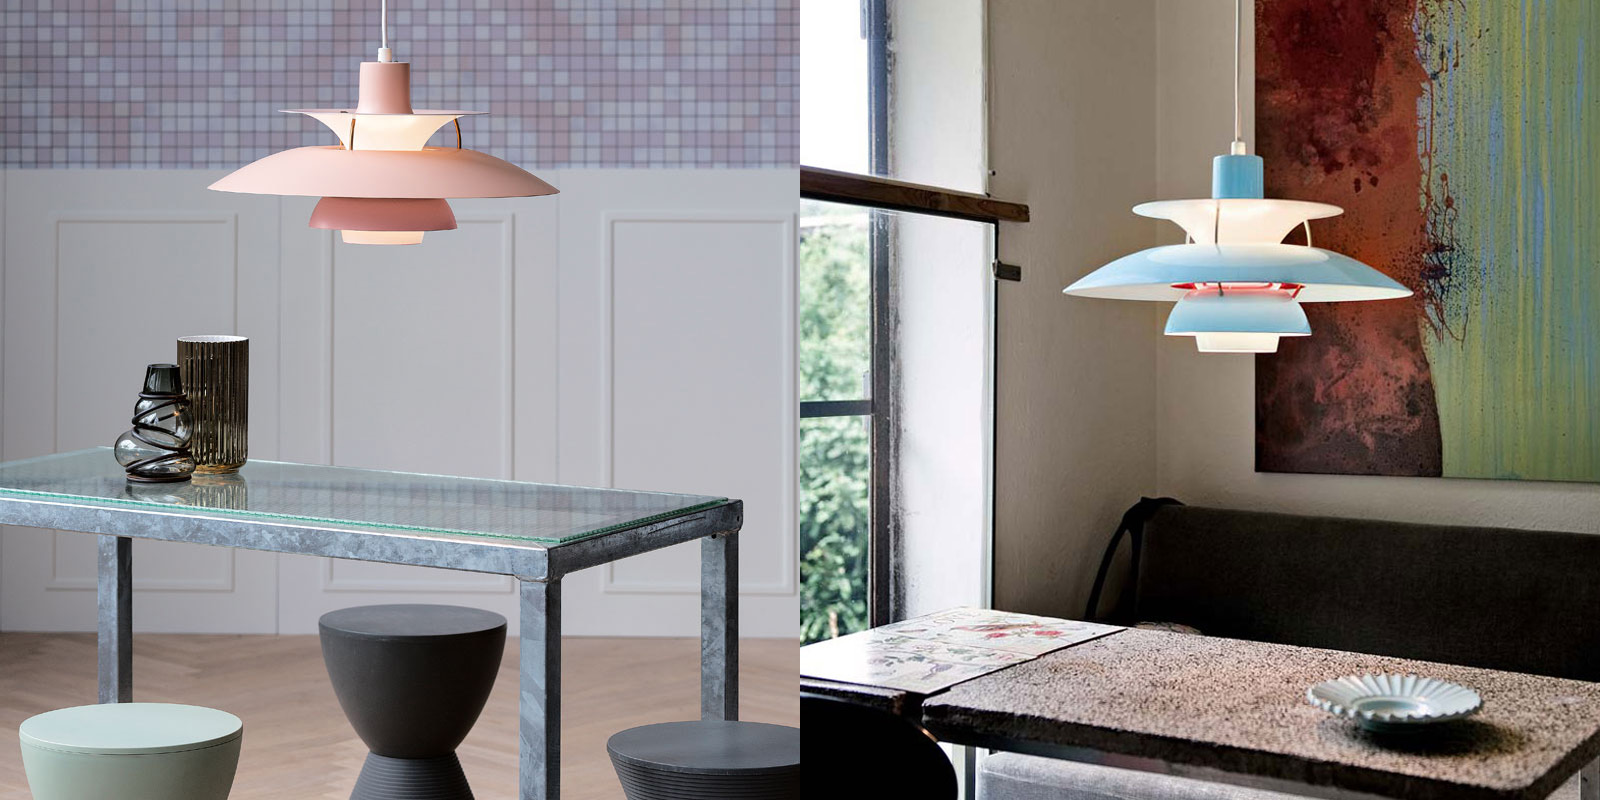 Douche Lamp Why We Love Louis Poulsen — Light My Nest